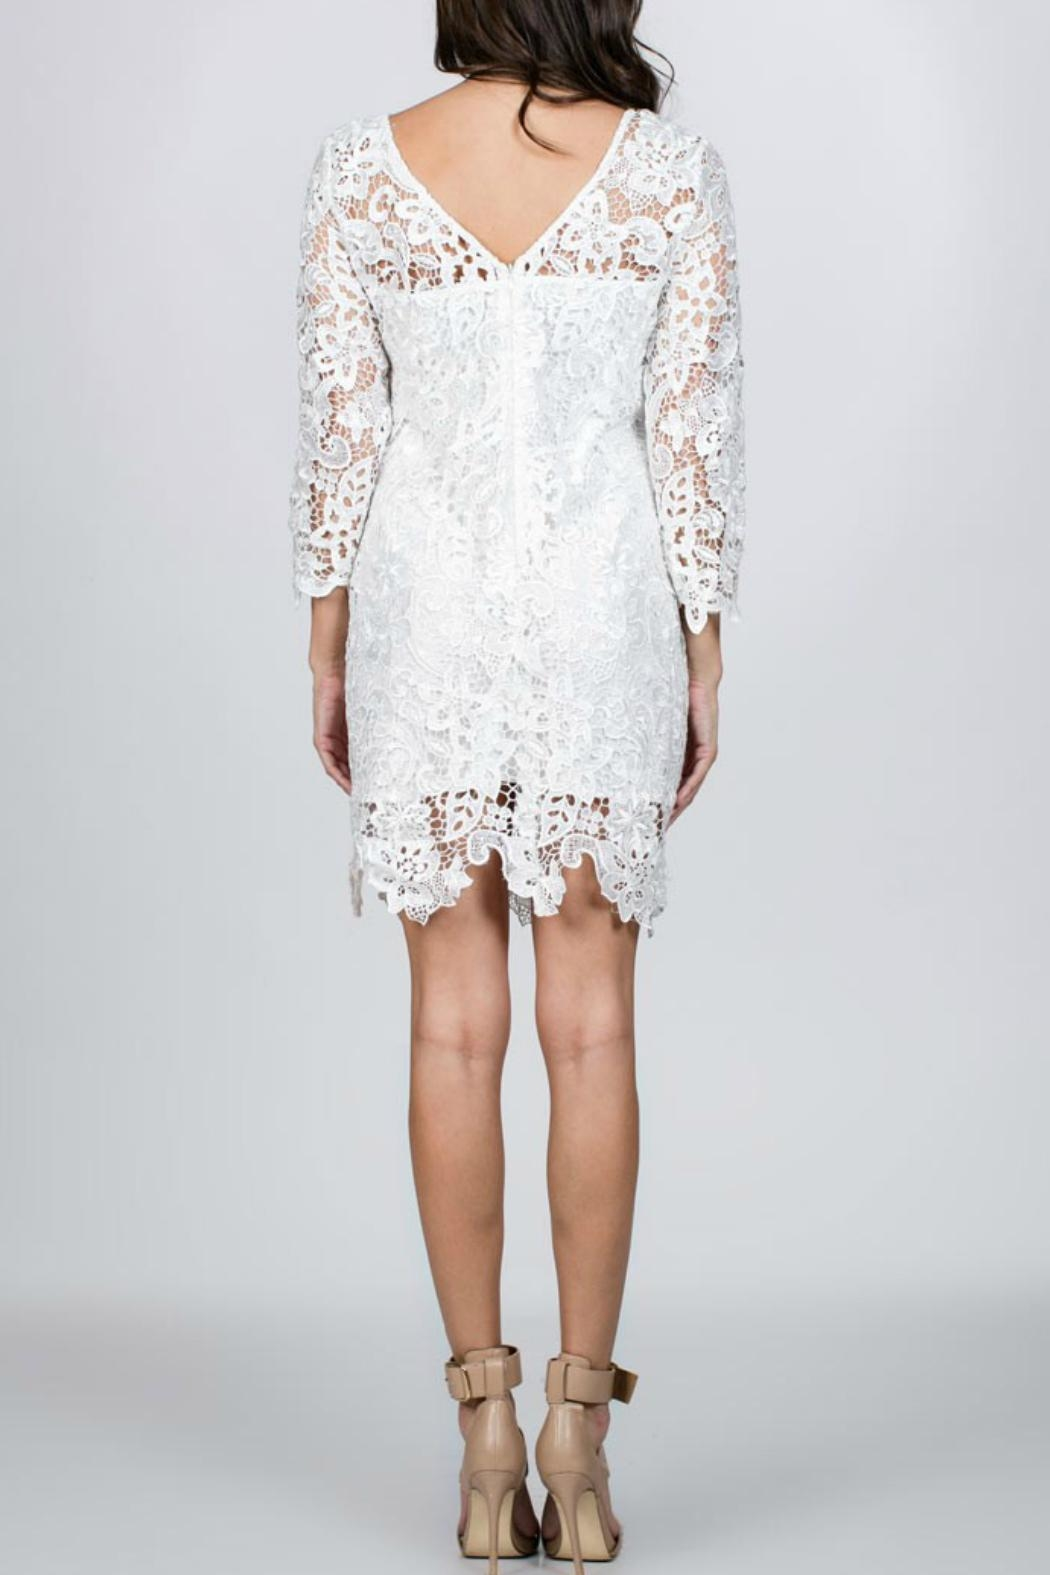 Ark & Co. White Lace Dress - Front Full Image